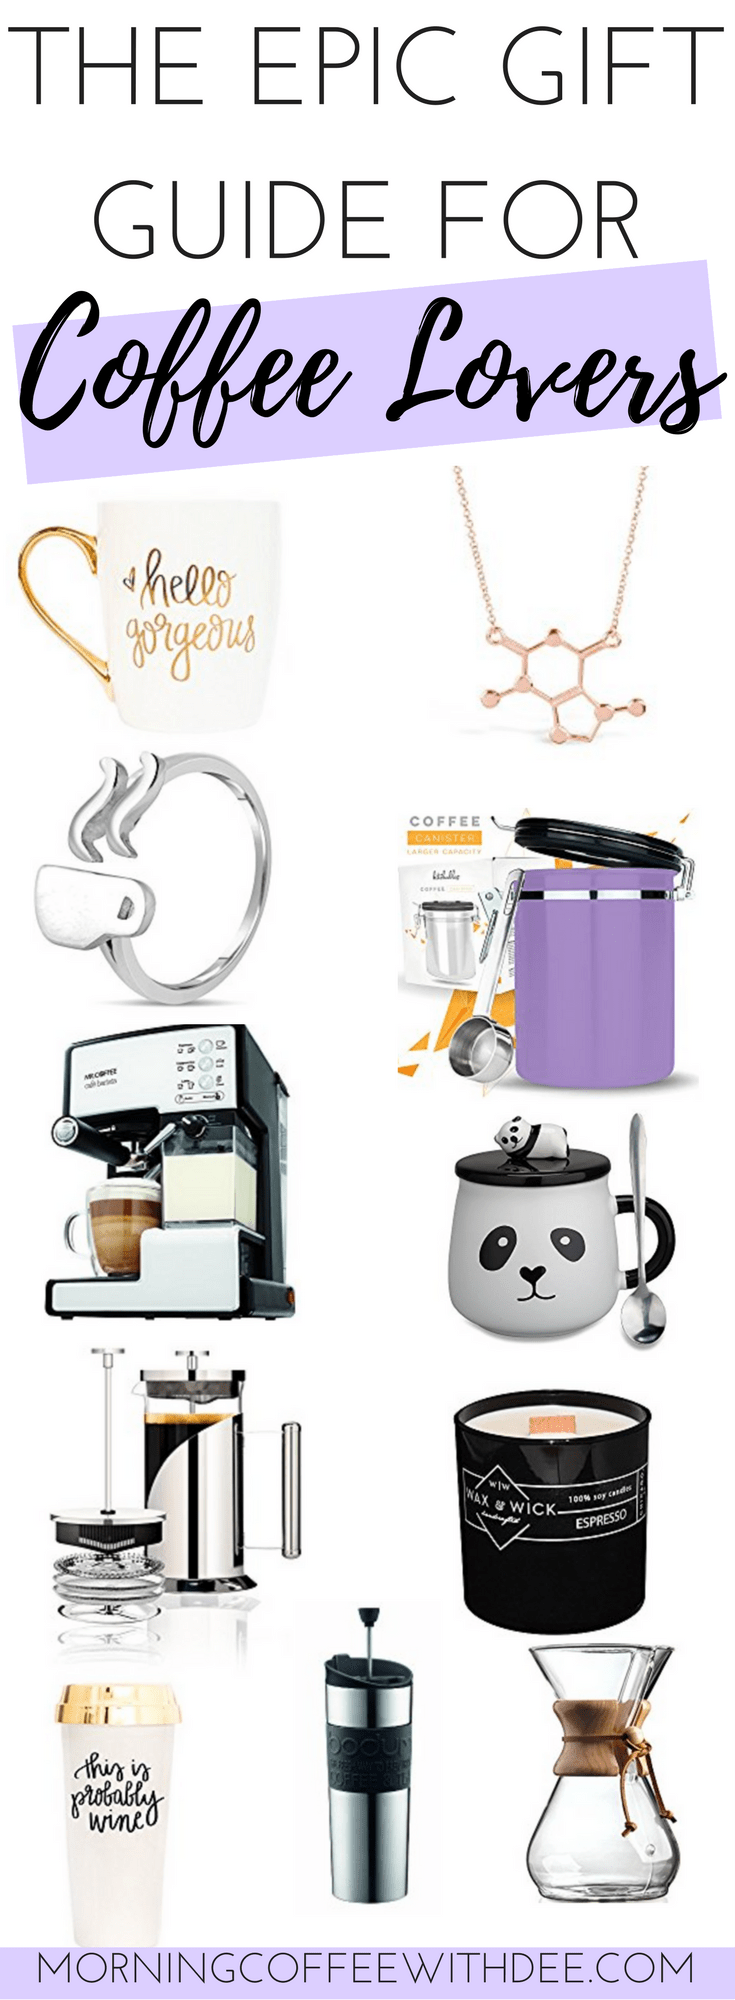 The amazingly epic gift guide for coffee lovers! 30 gift ideas just for the special coffee lover in your life. I even got input from other fellow coffee lovers to help put this gift list together! | holiday gift guide | gifts for coffee lovers | gift ideas for coffee lovers | coffee gifts | gifts for coffee drinkers | holiday gift ideas | christmas gift guide | unique gifts for coffee lovers christmas